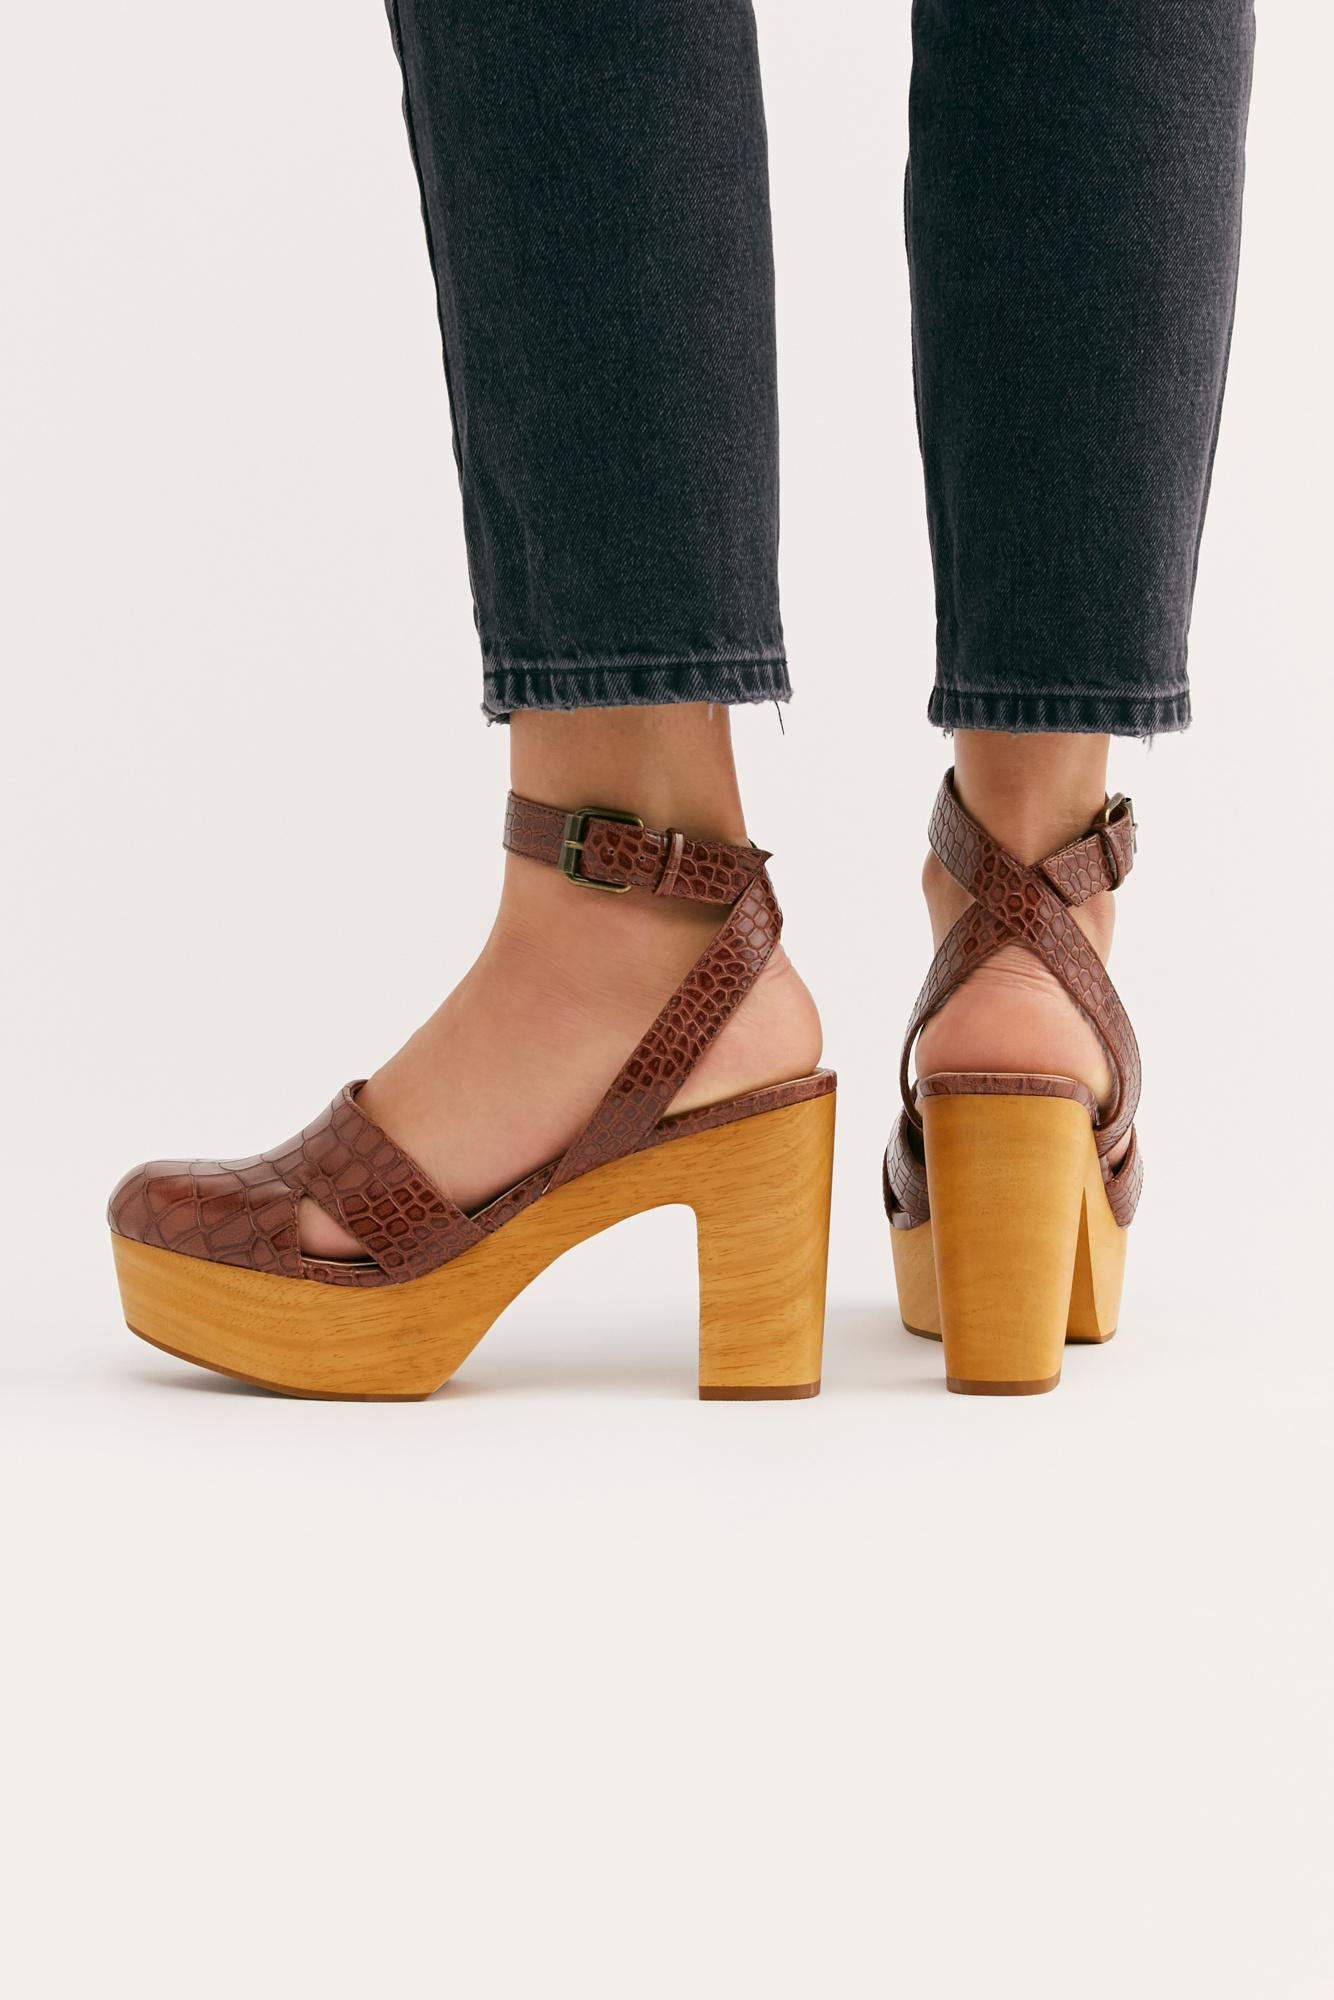 90e861818f8a Lyst - Free People Vegan Sunset Clog By Matisse in Brown